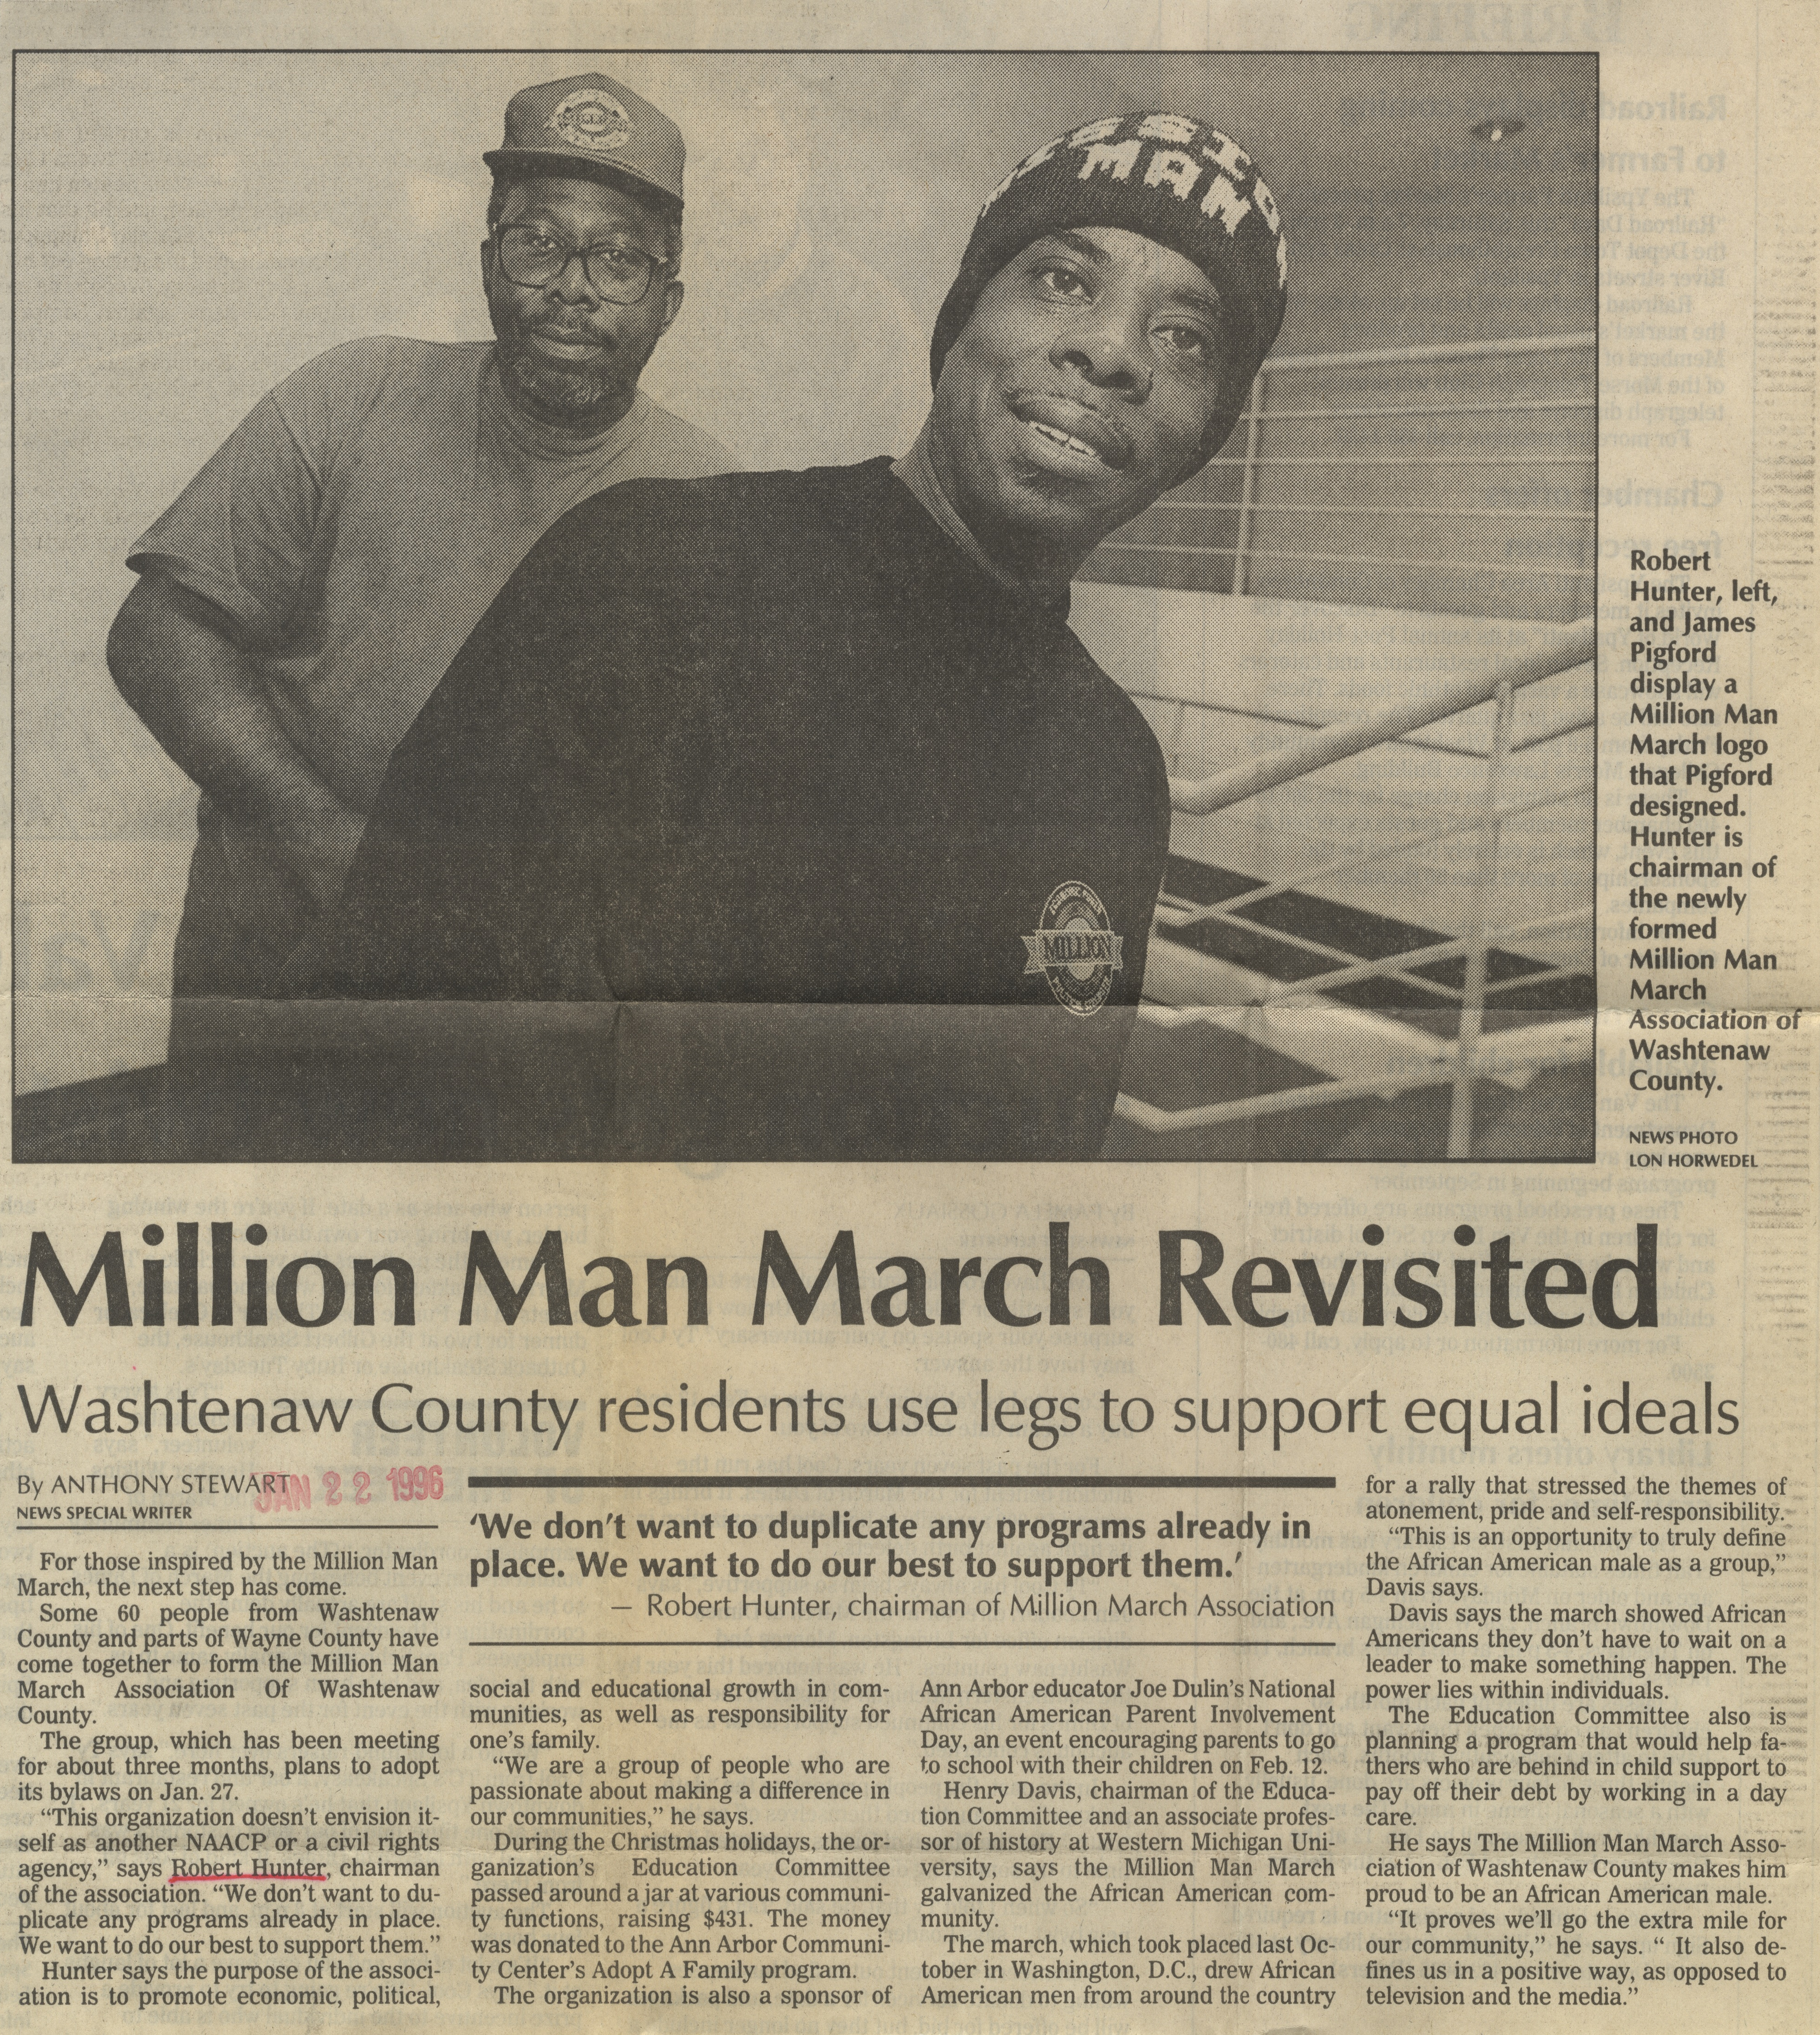 Million Man March Revisited image